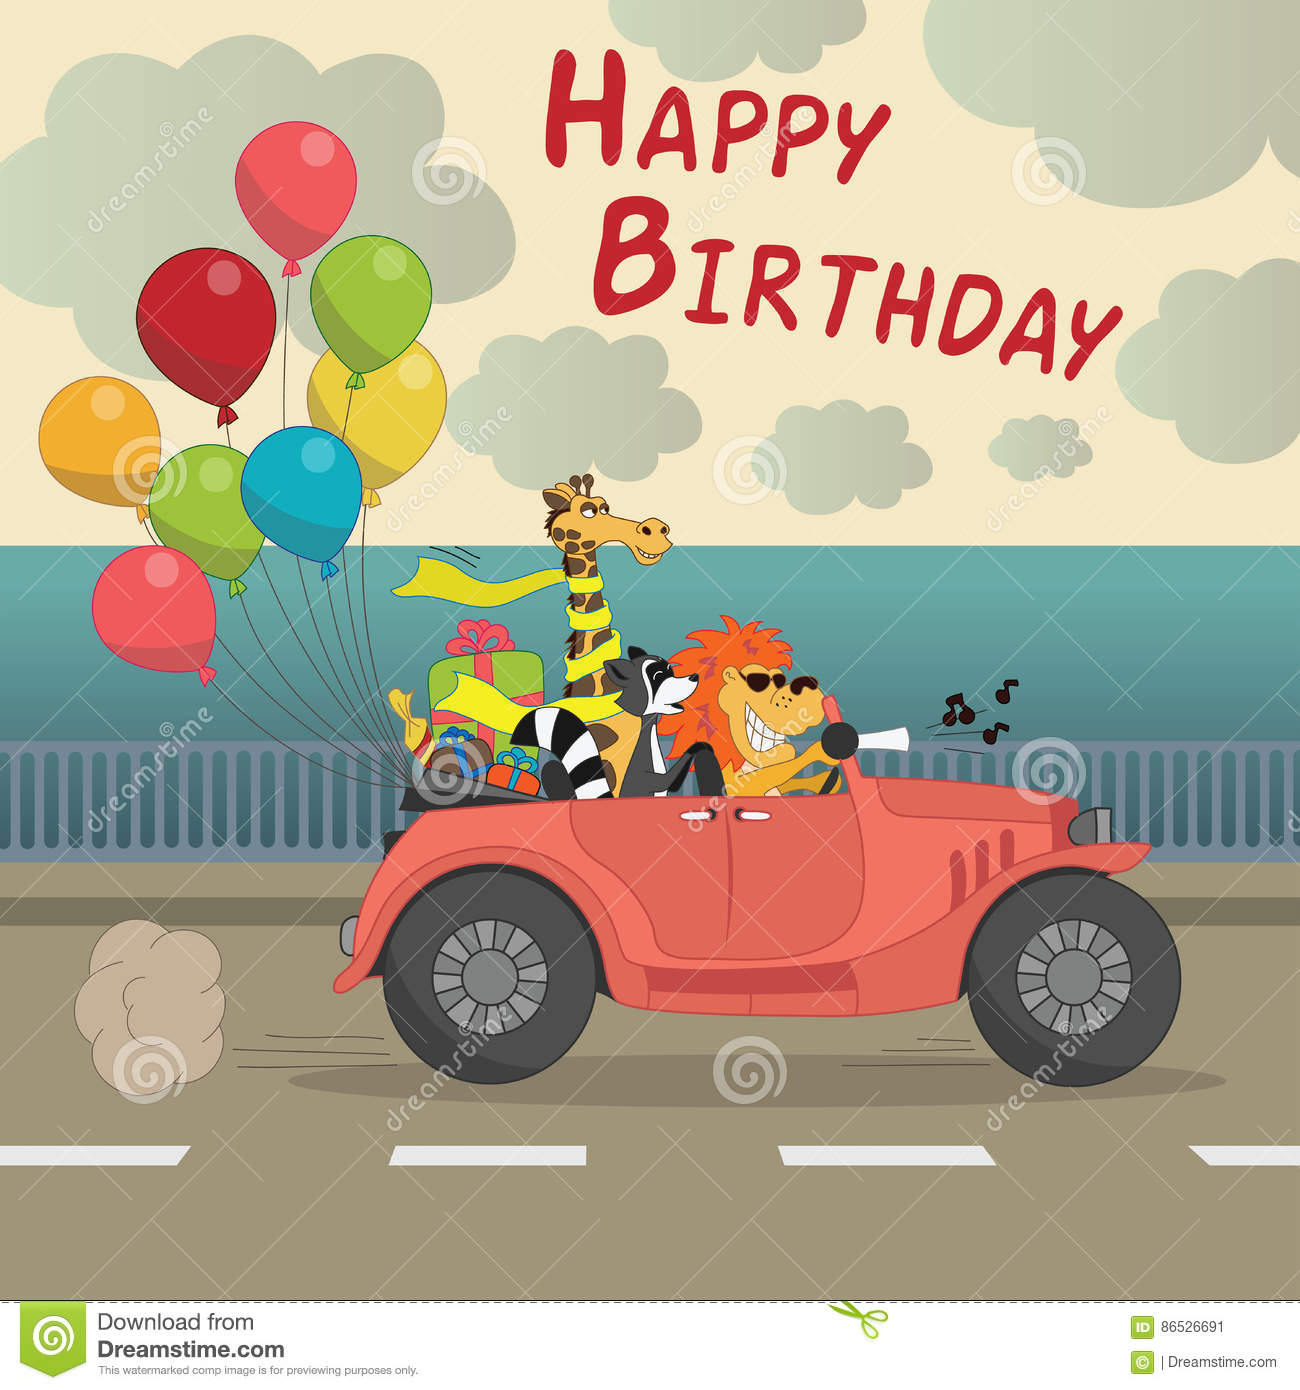 Cute Happy Birthday Greeting Card For Child Fun Cartoon Style There Are Gifts Funny Animals In The Car Cabriolet With Balloons Vector Illustration